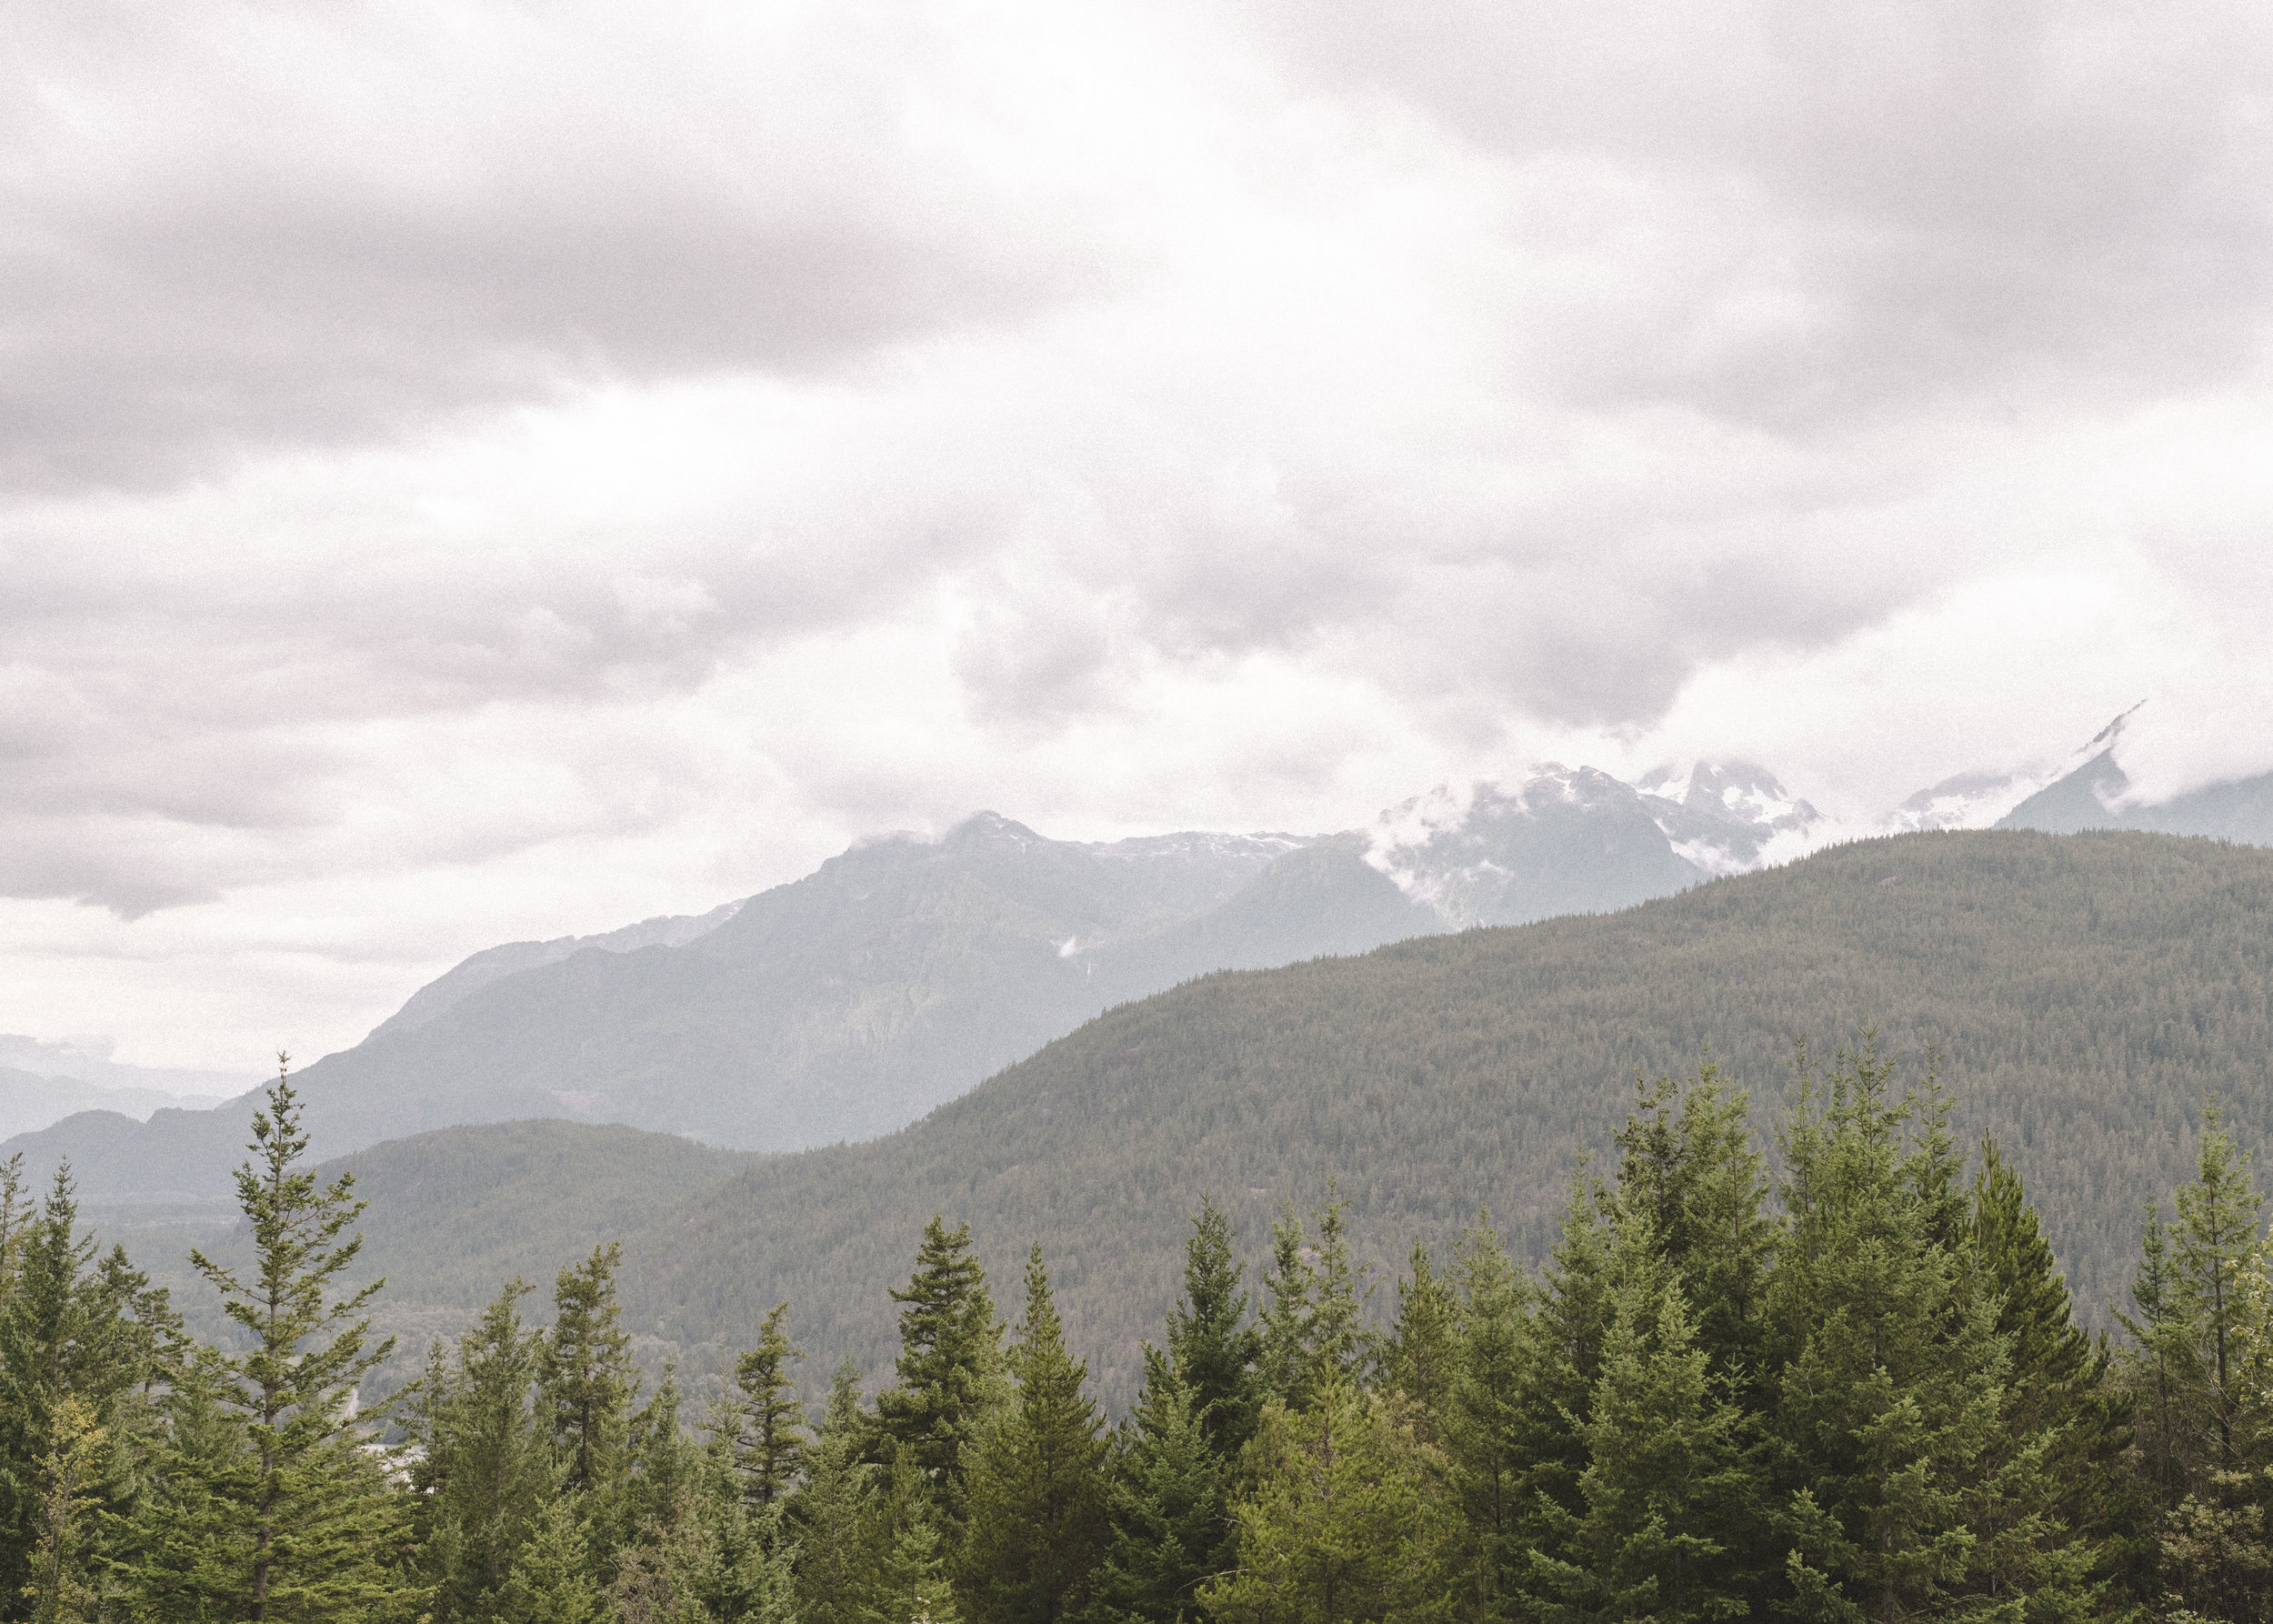 3-days-in-whistler-by-lisa-linh